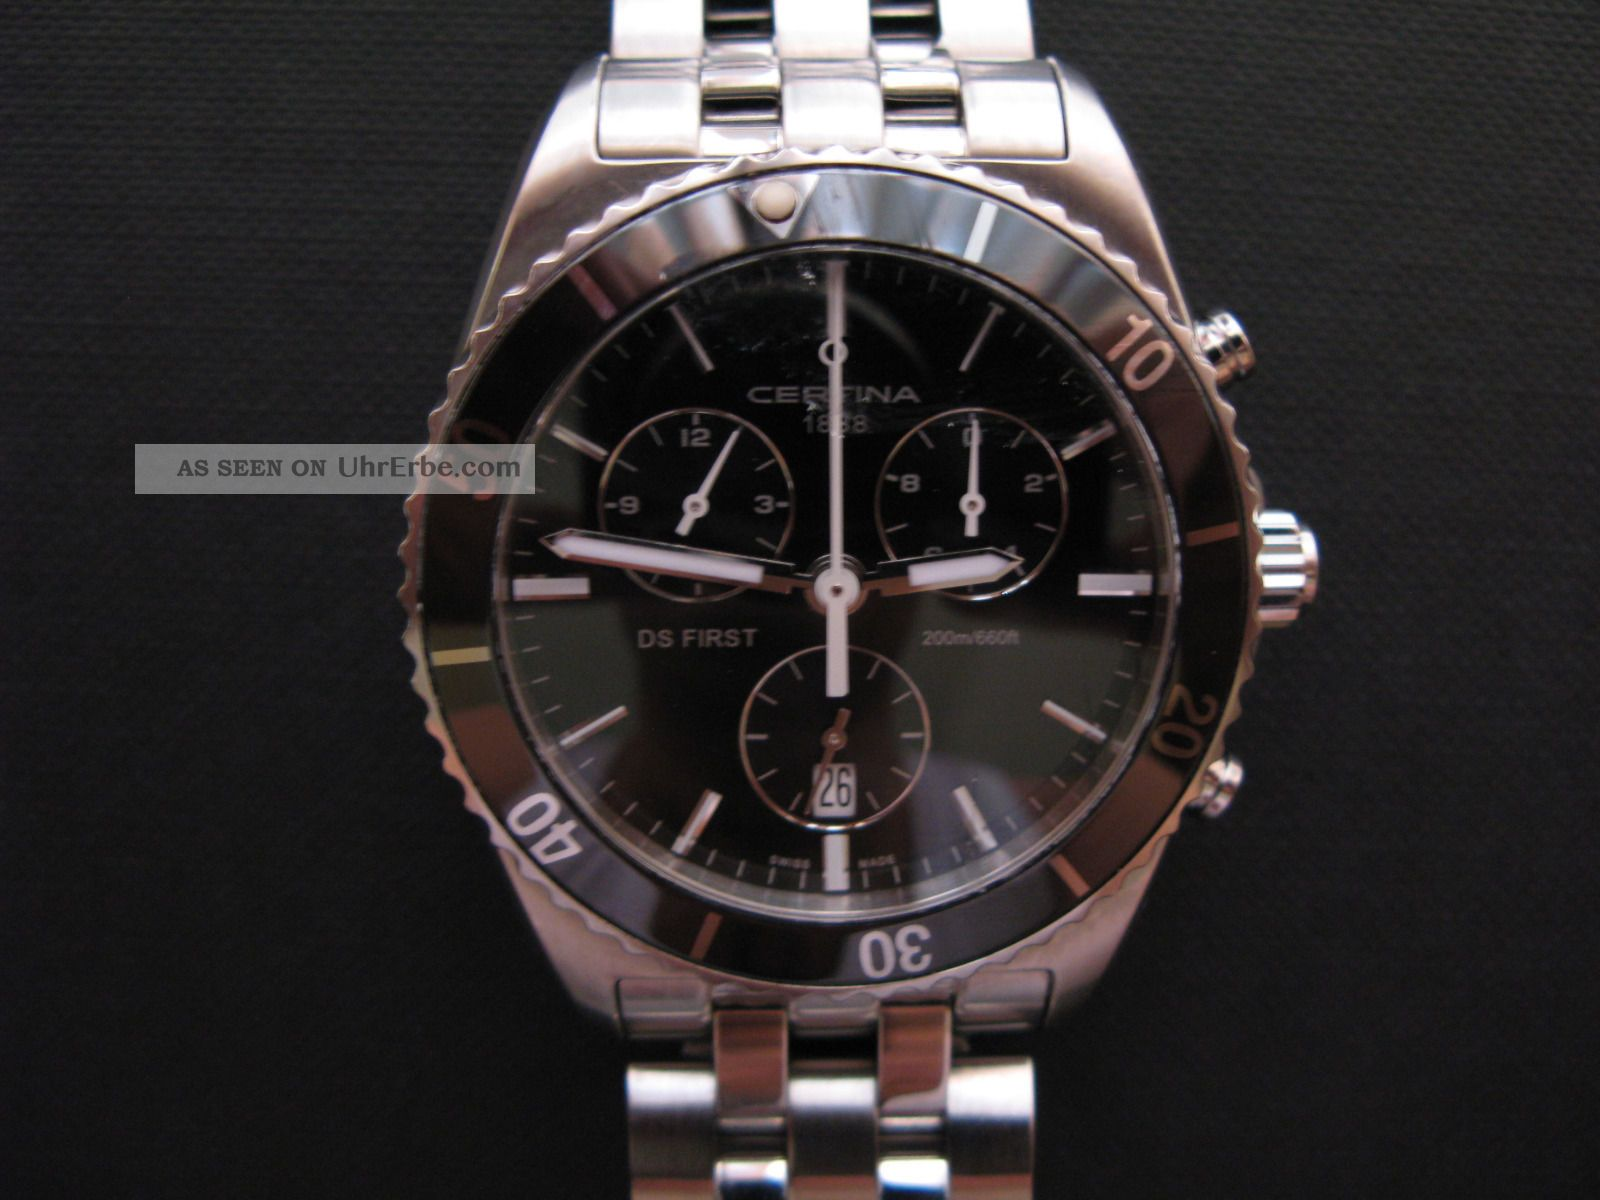 Certina Ds First Gent Ceramic Chronograph Armbanduhren Bild